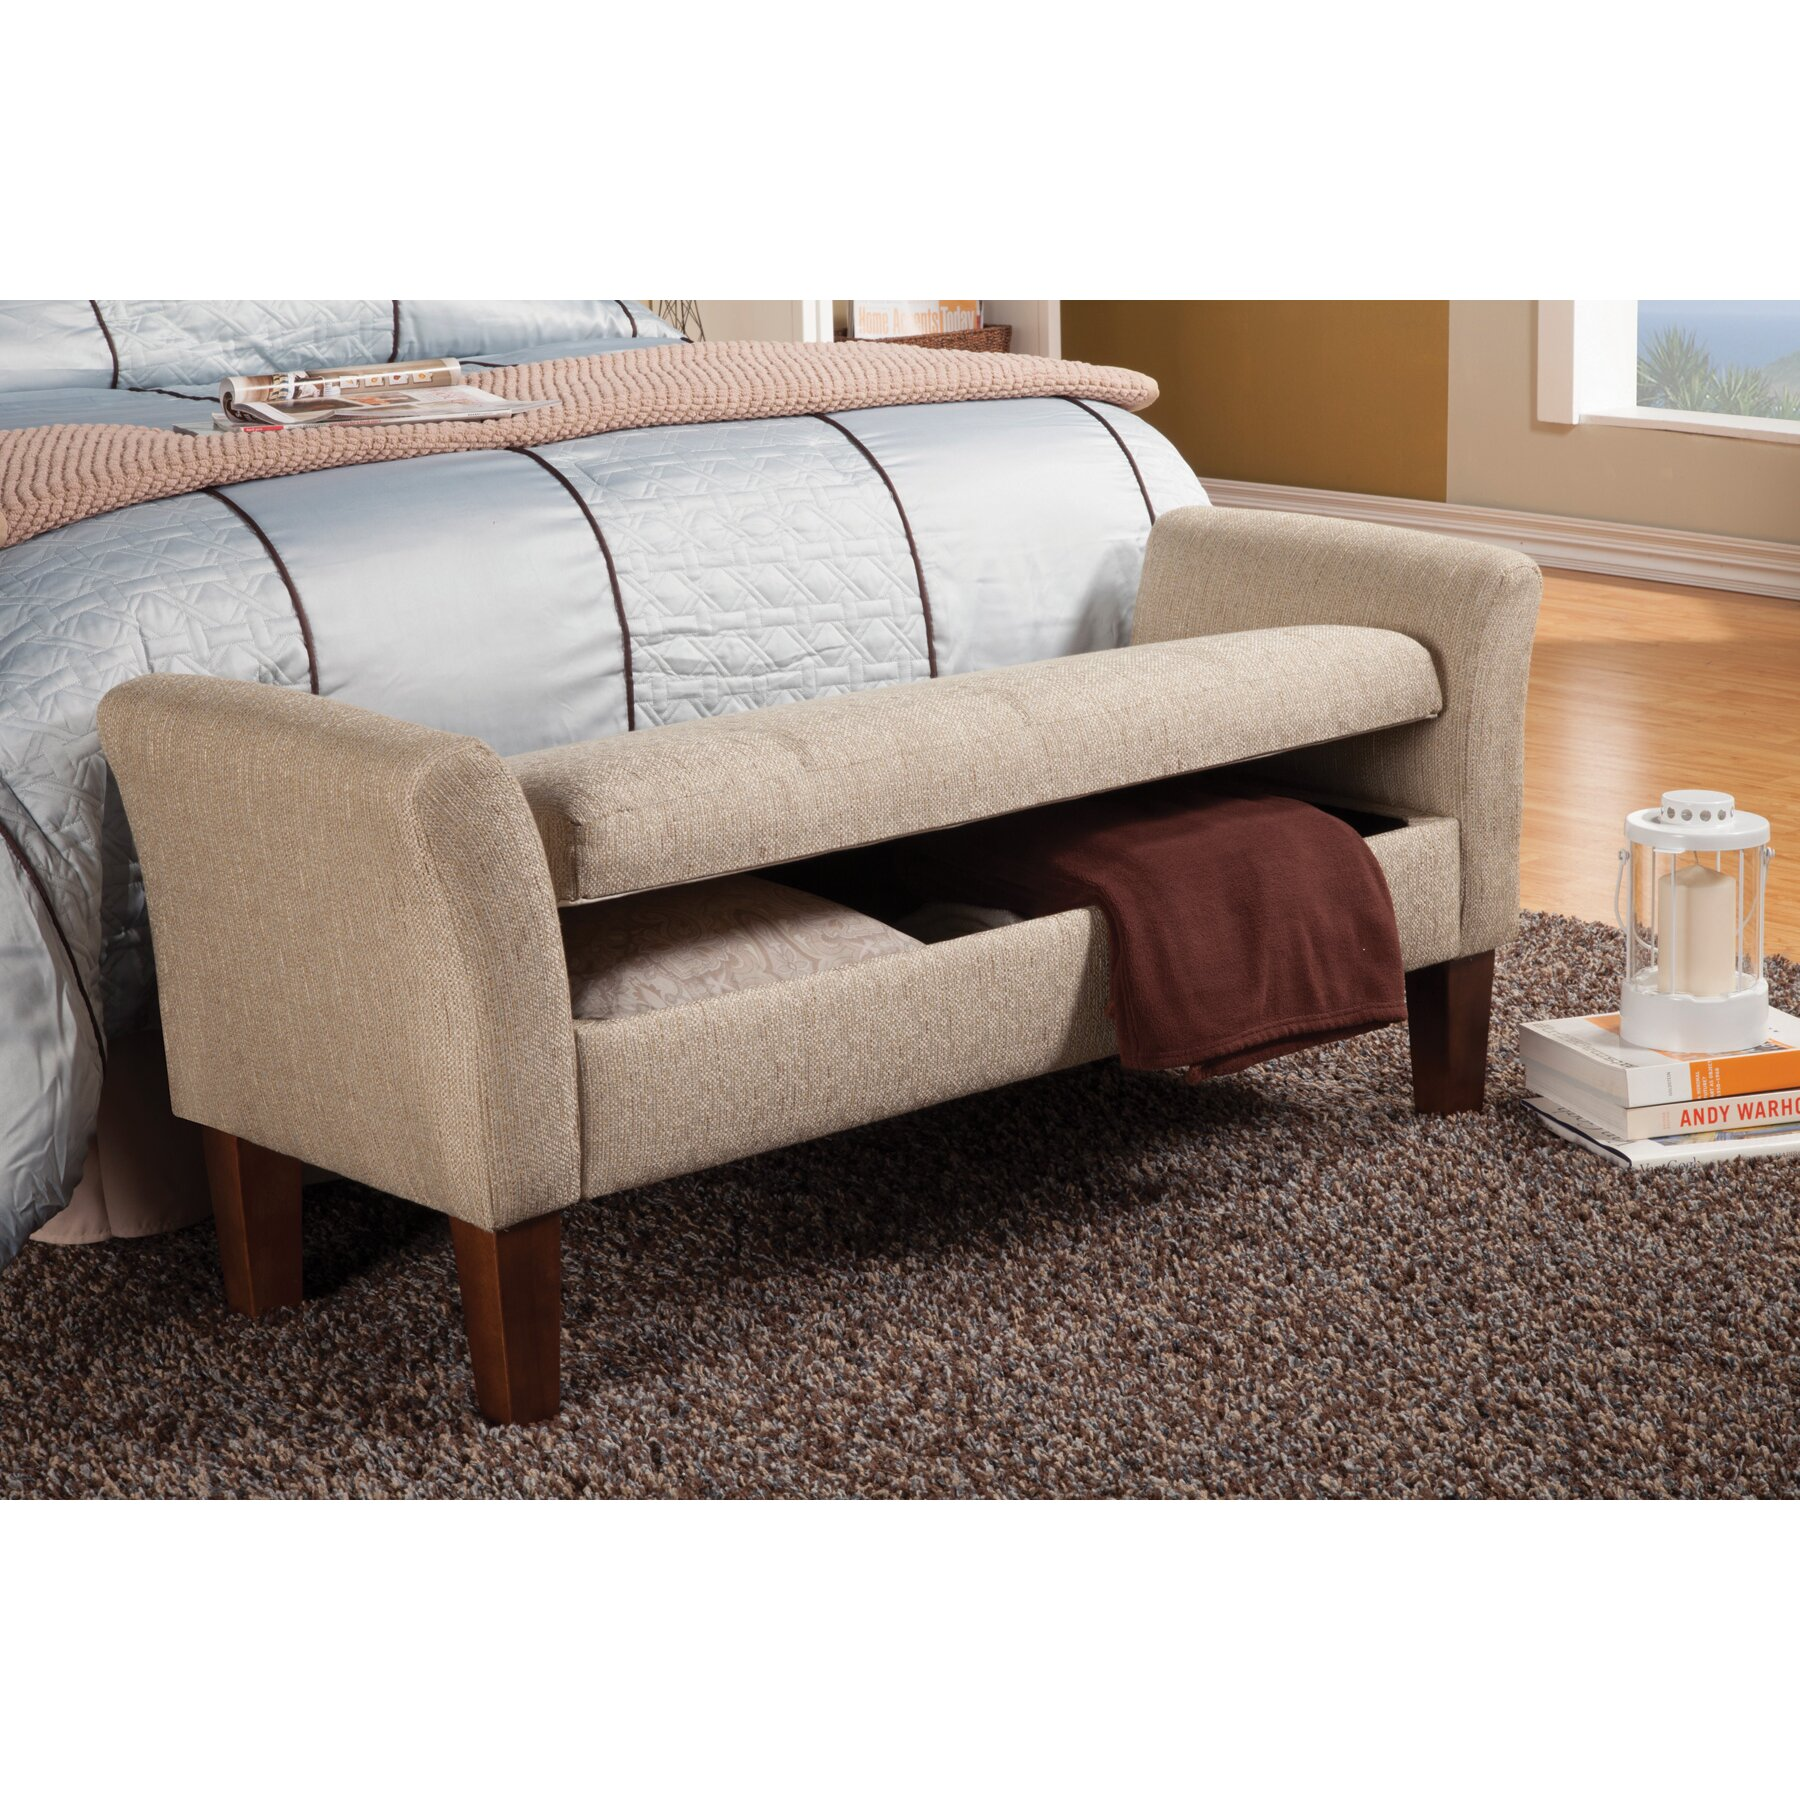 wildon home 174 upholstered storage bedroom bench reviews 17419 | wildon home 2525c2 2525ae upholstered storage bedroom bench cst17575